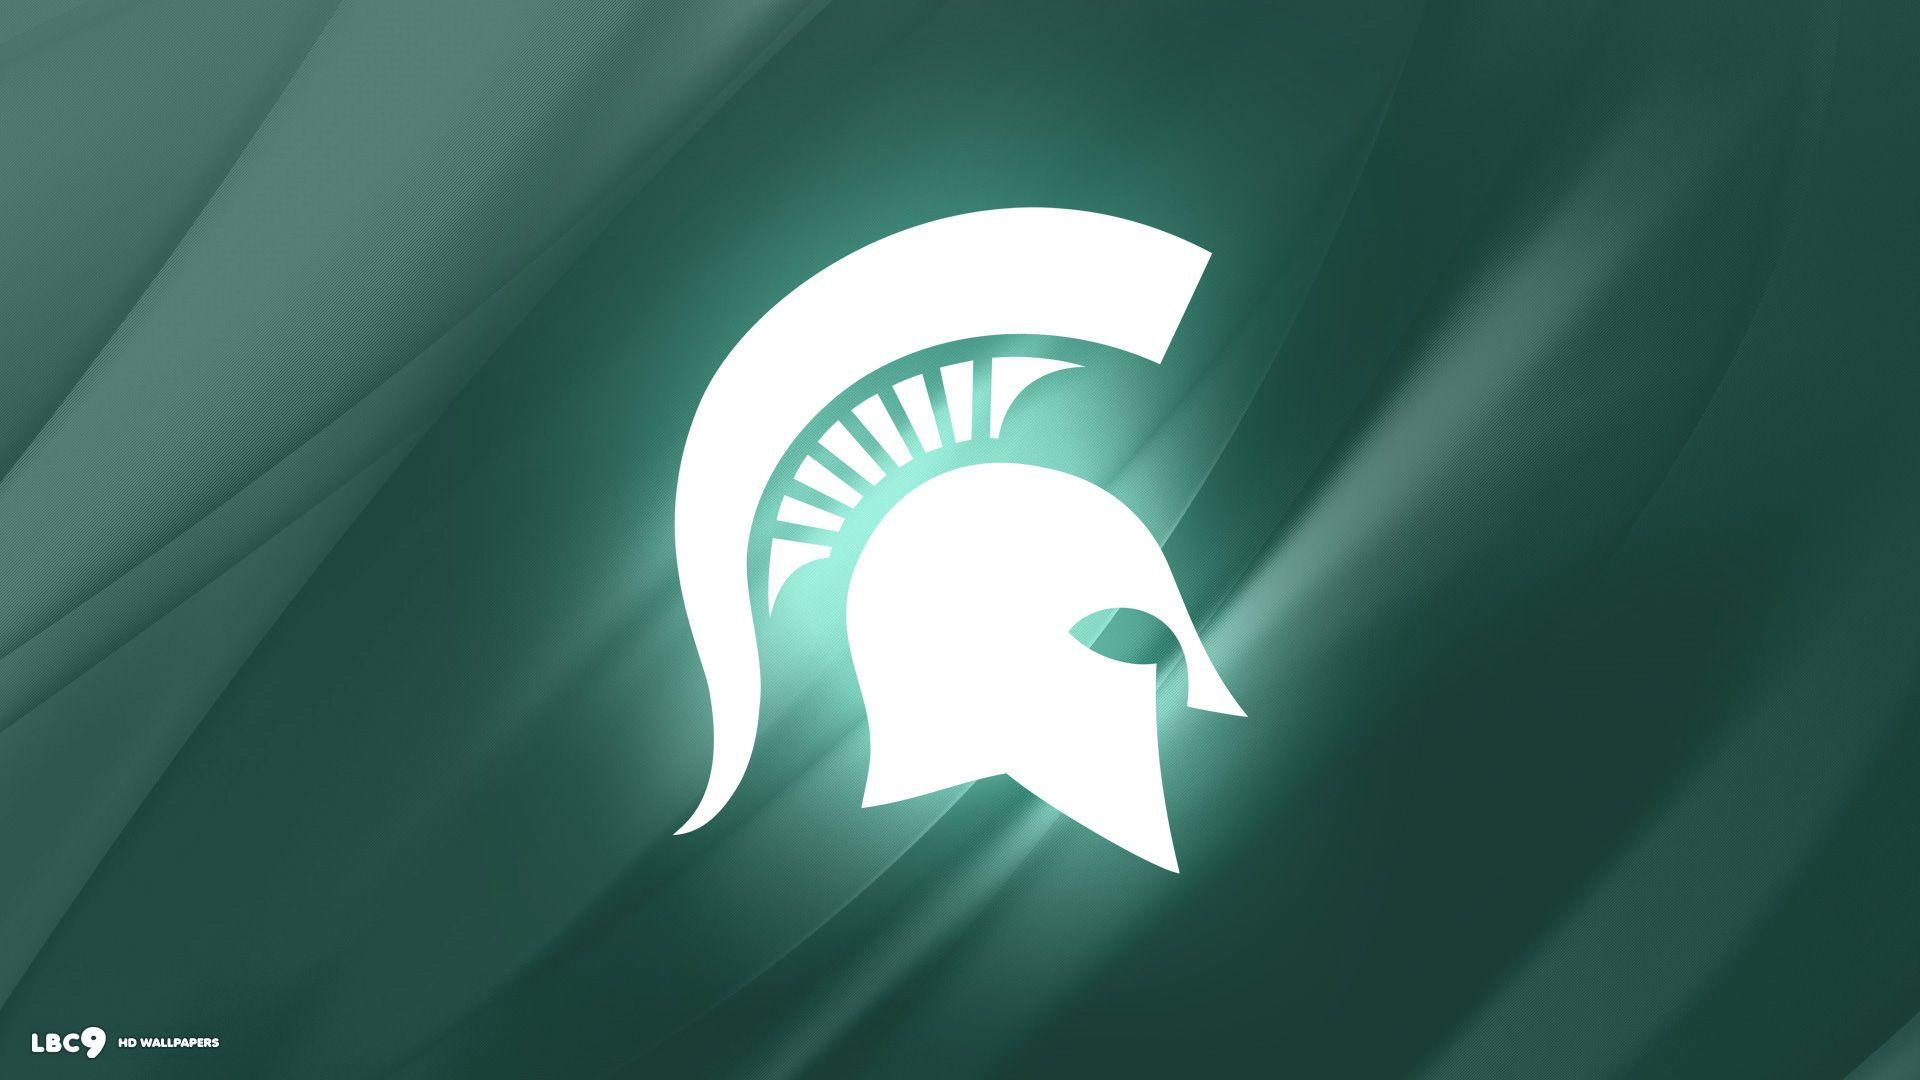 spartan iphone 5 wallpaper - photo #17